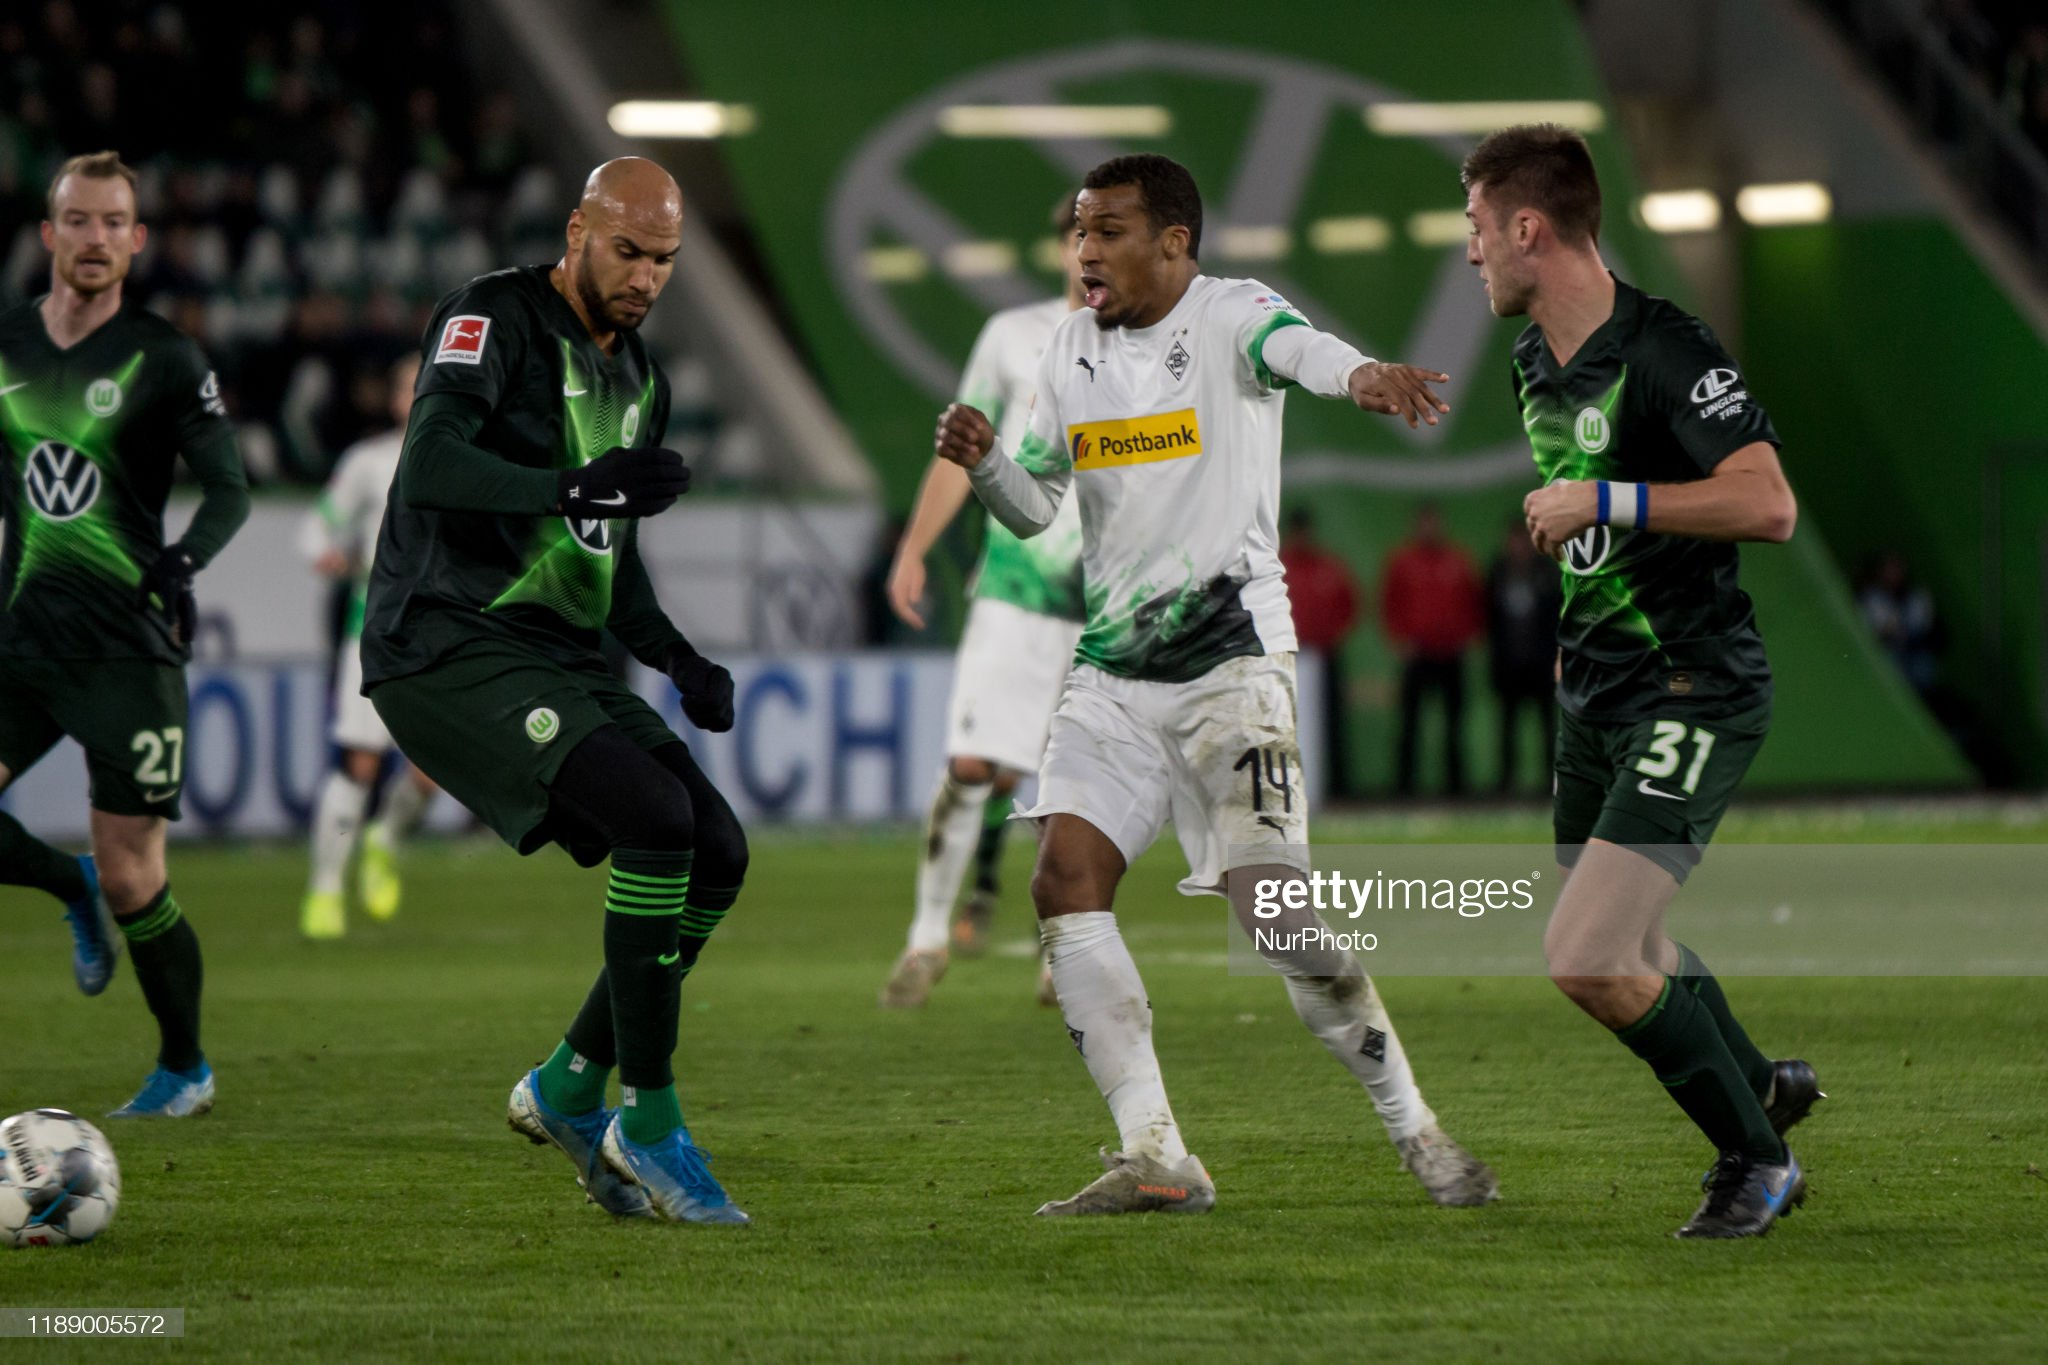 Monchengladbach vs Wolfsburg Preview, prediction and odds